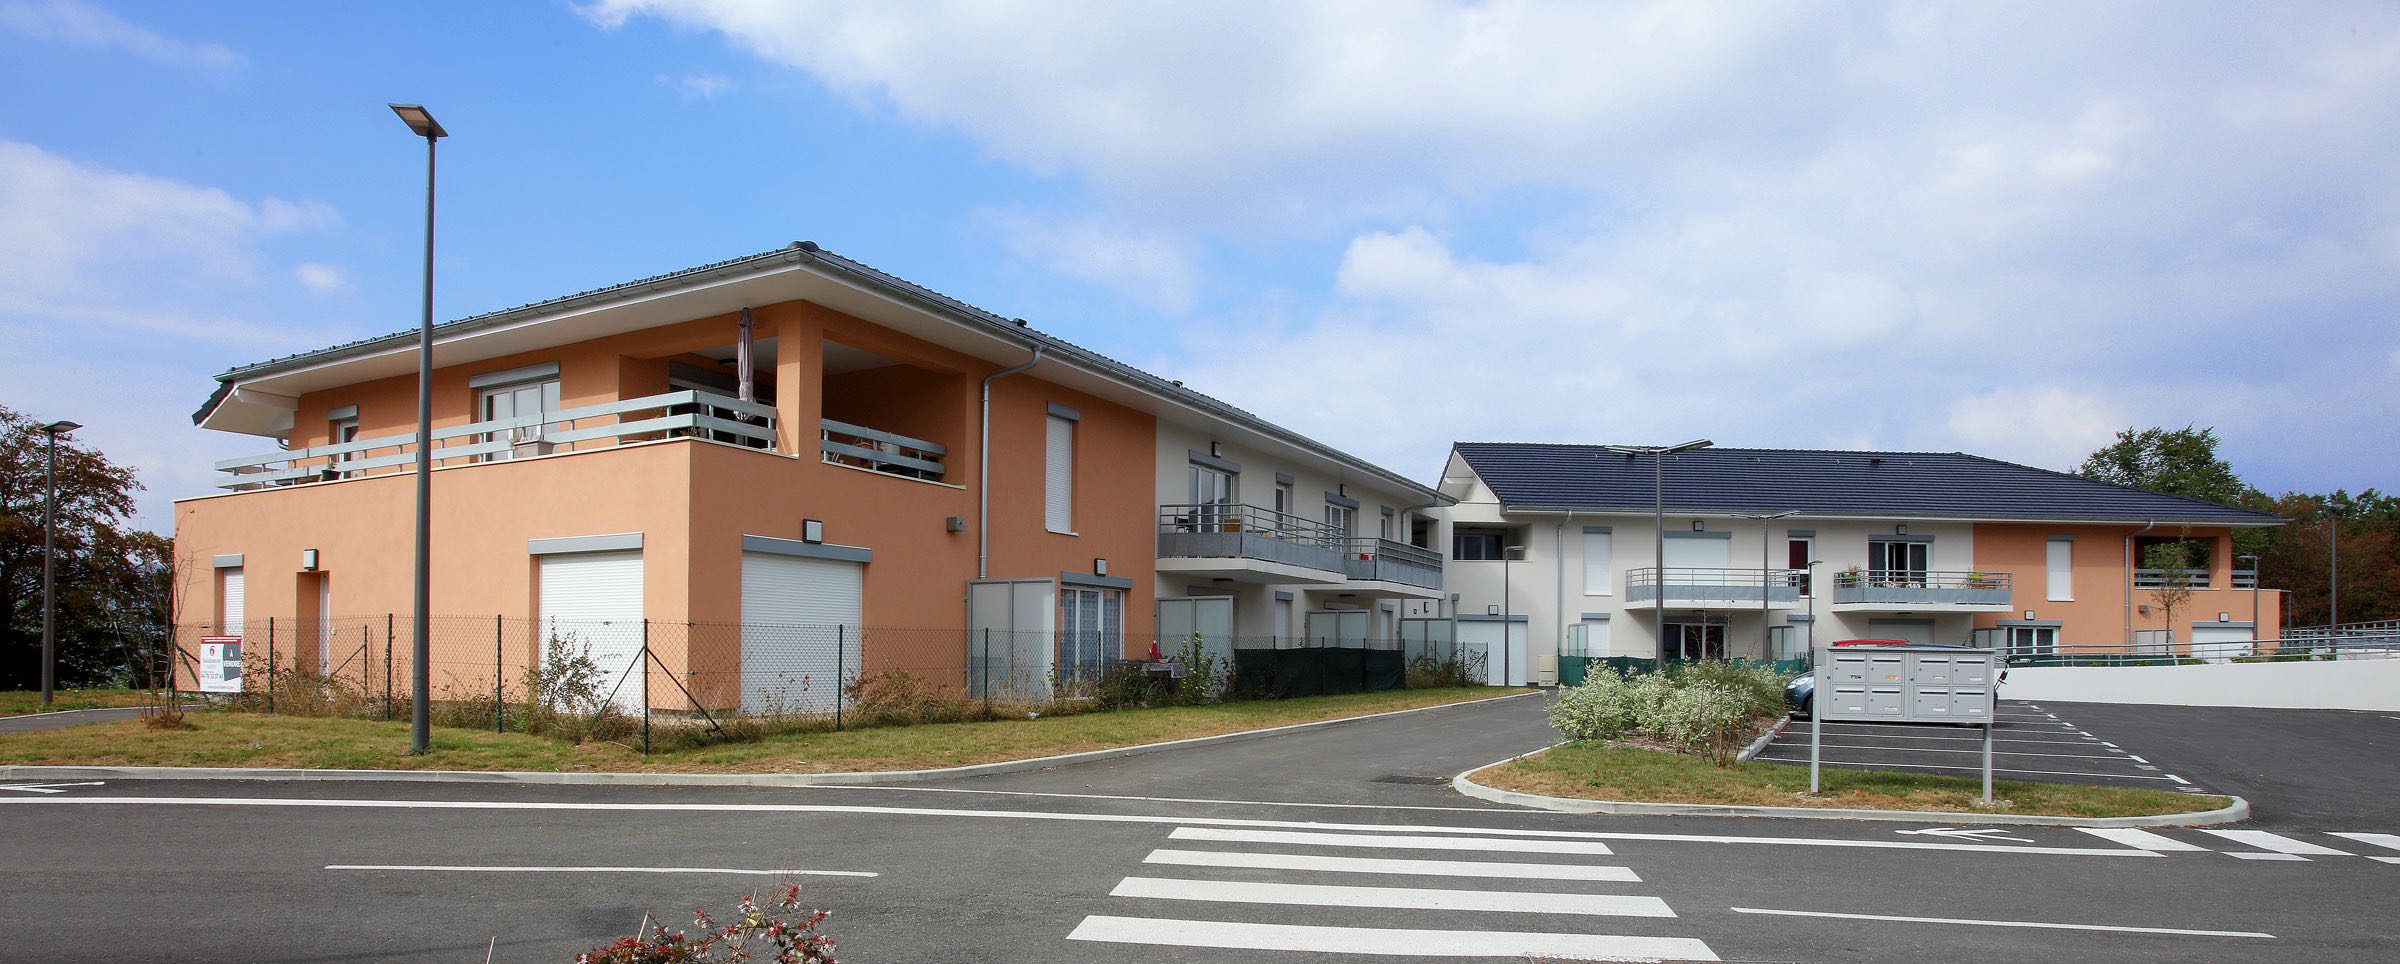 Programme immobilier Chambery